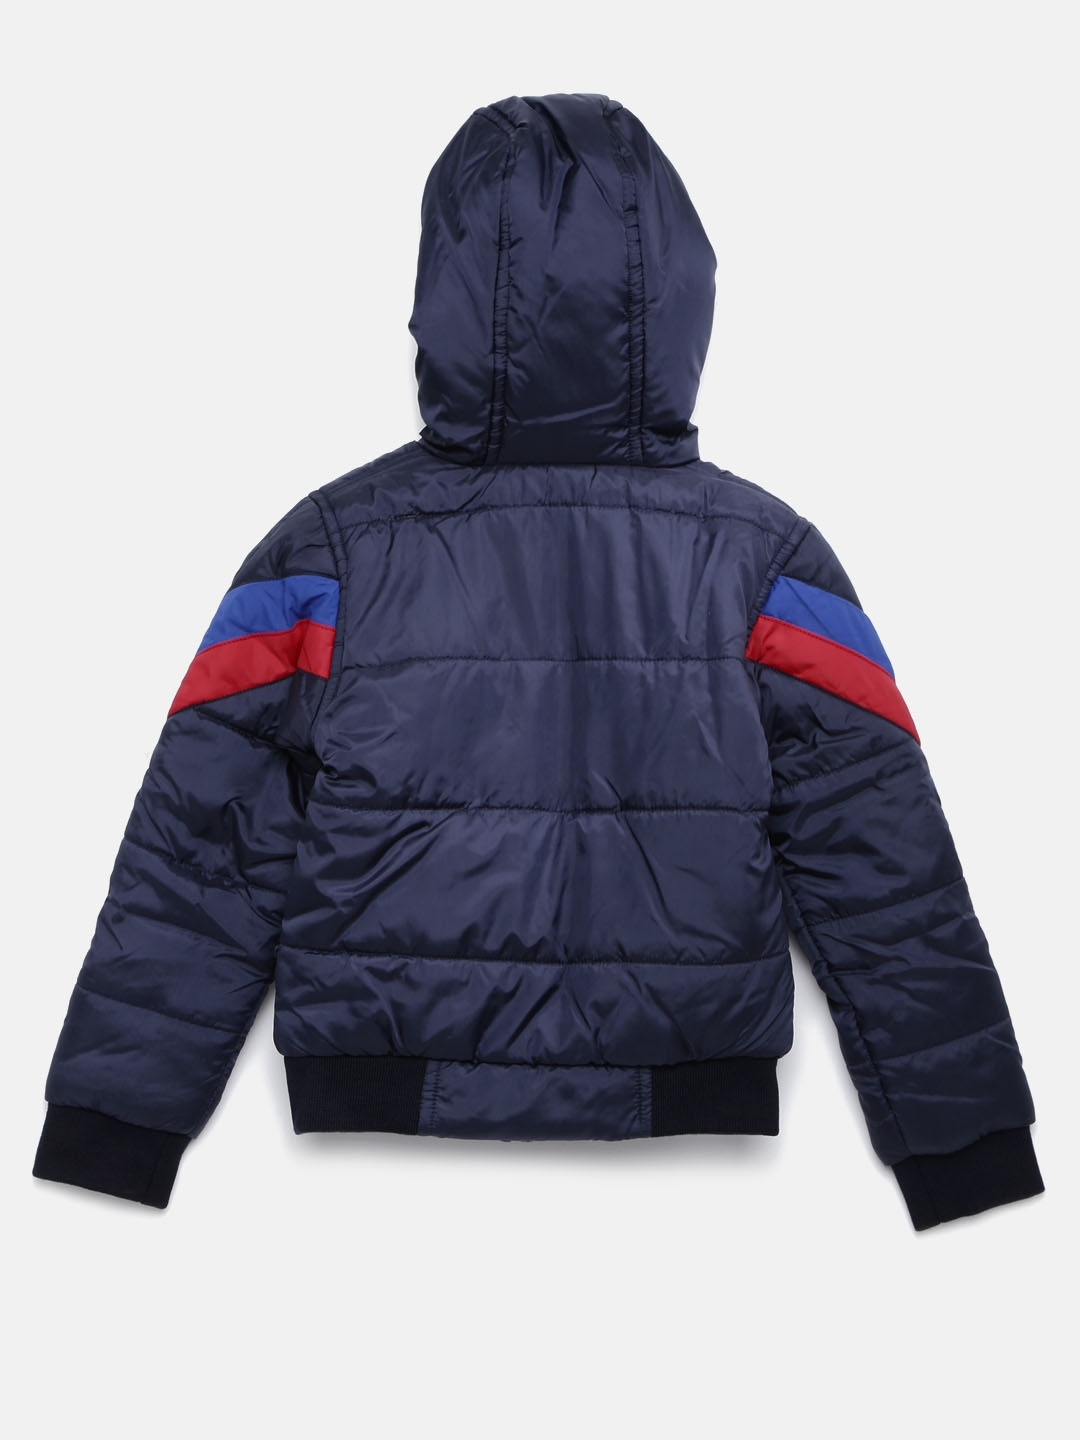 20e6e65d5 Buy YK Boys Navy   Red Striped Hooded Jacket - Jackets for Boys ...